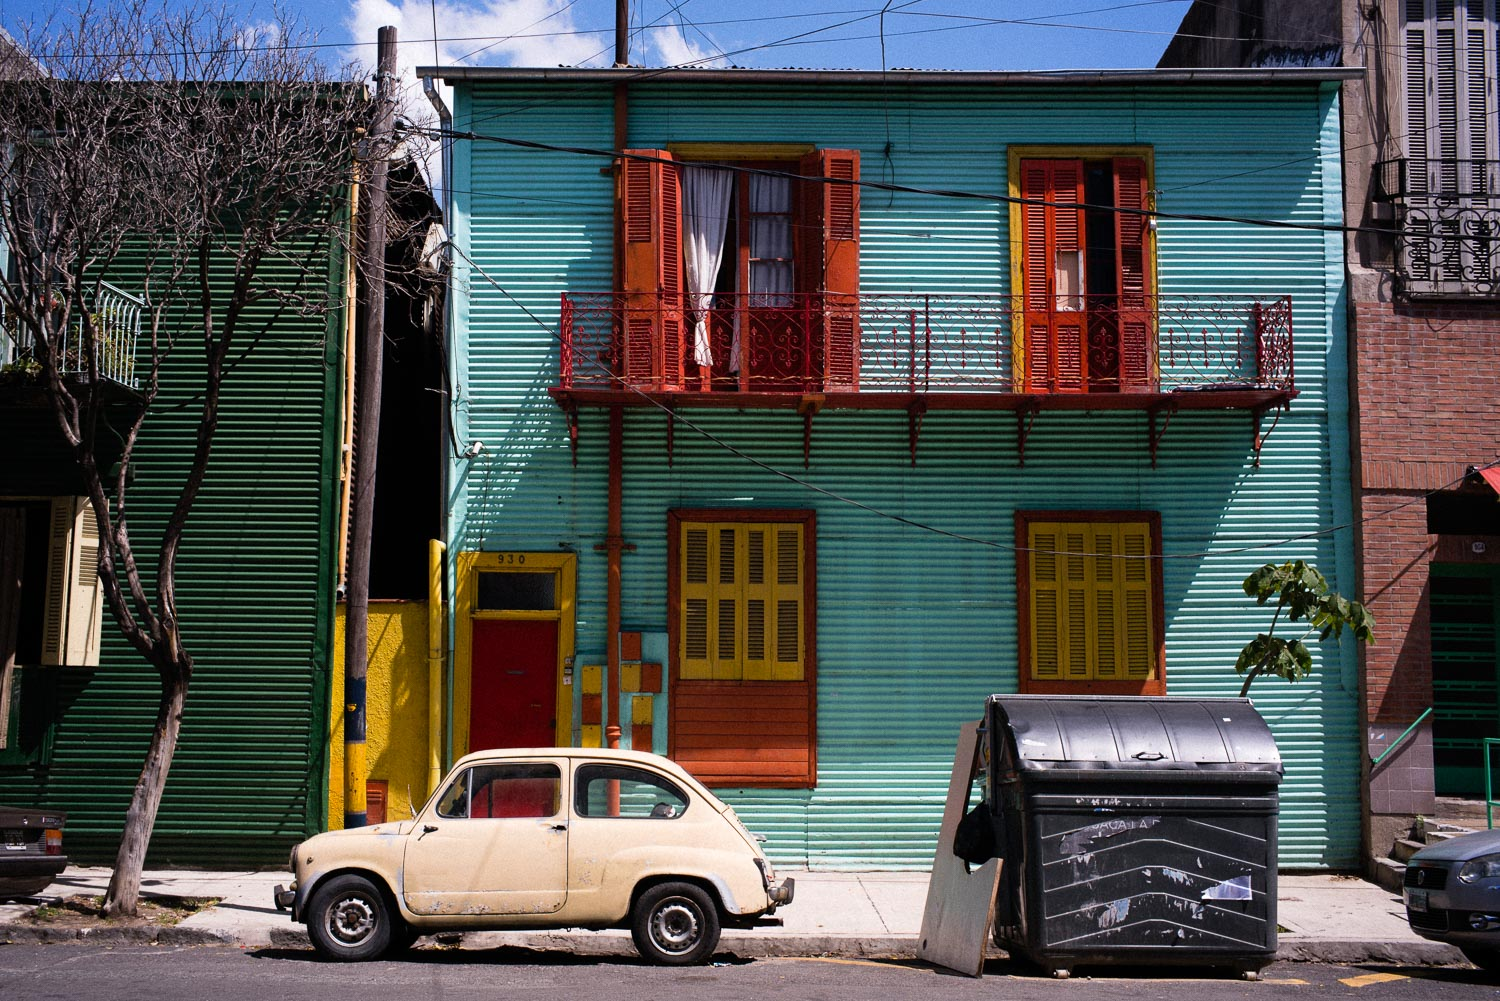 A scene from a different epoch in La Boca.